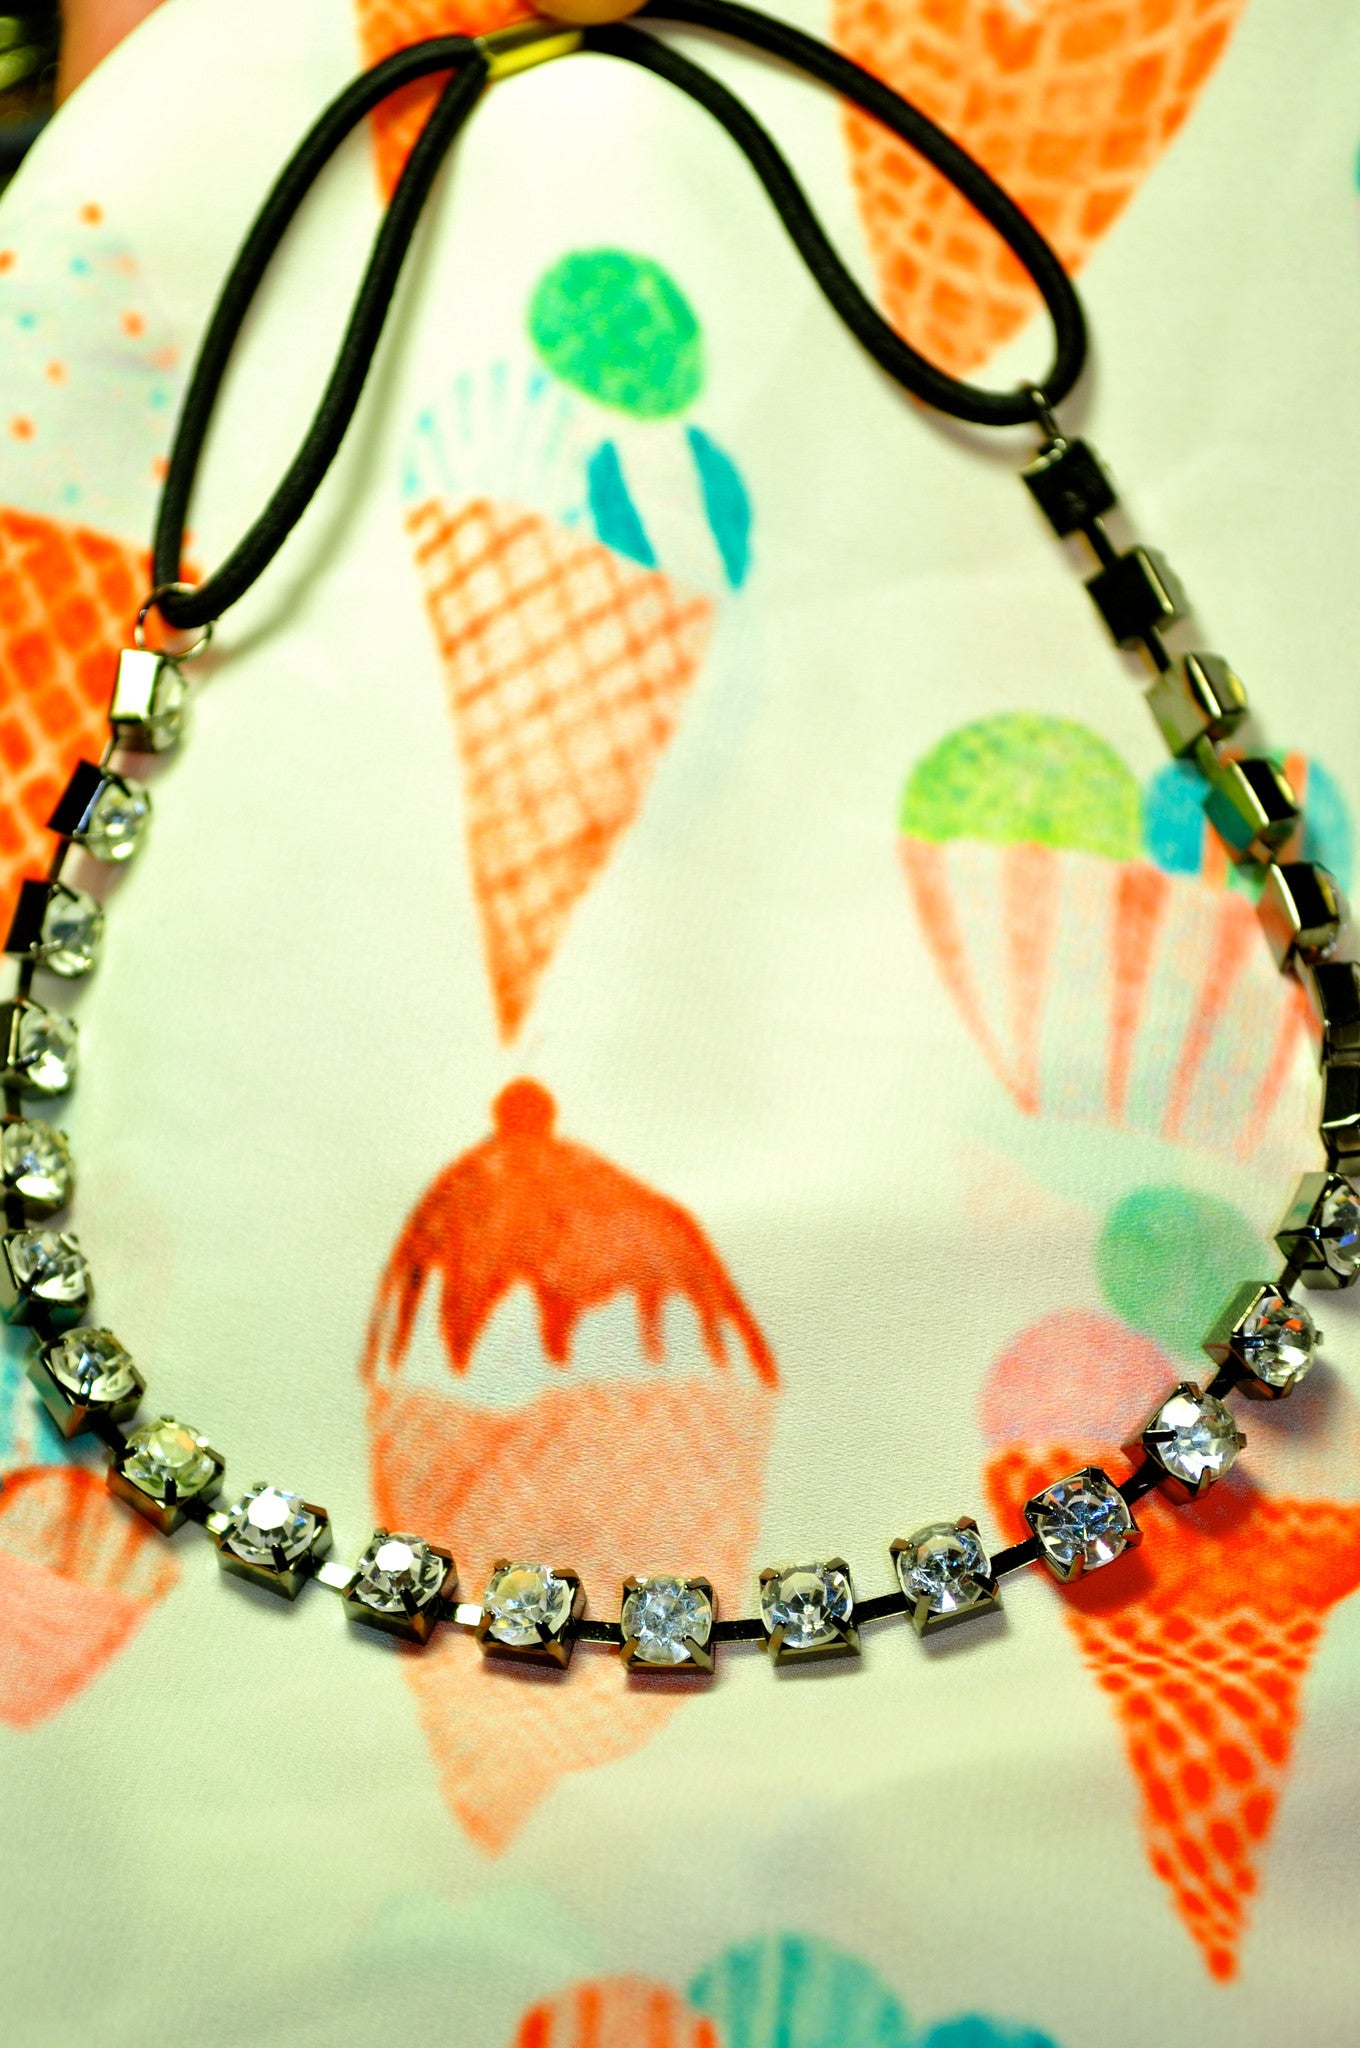 Crystals for Days Necklace